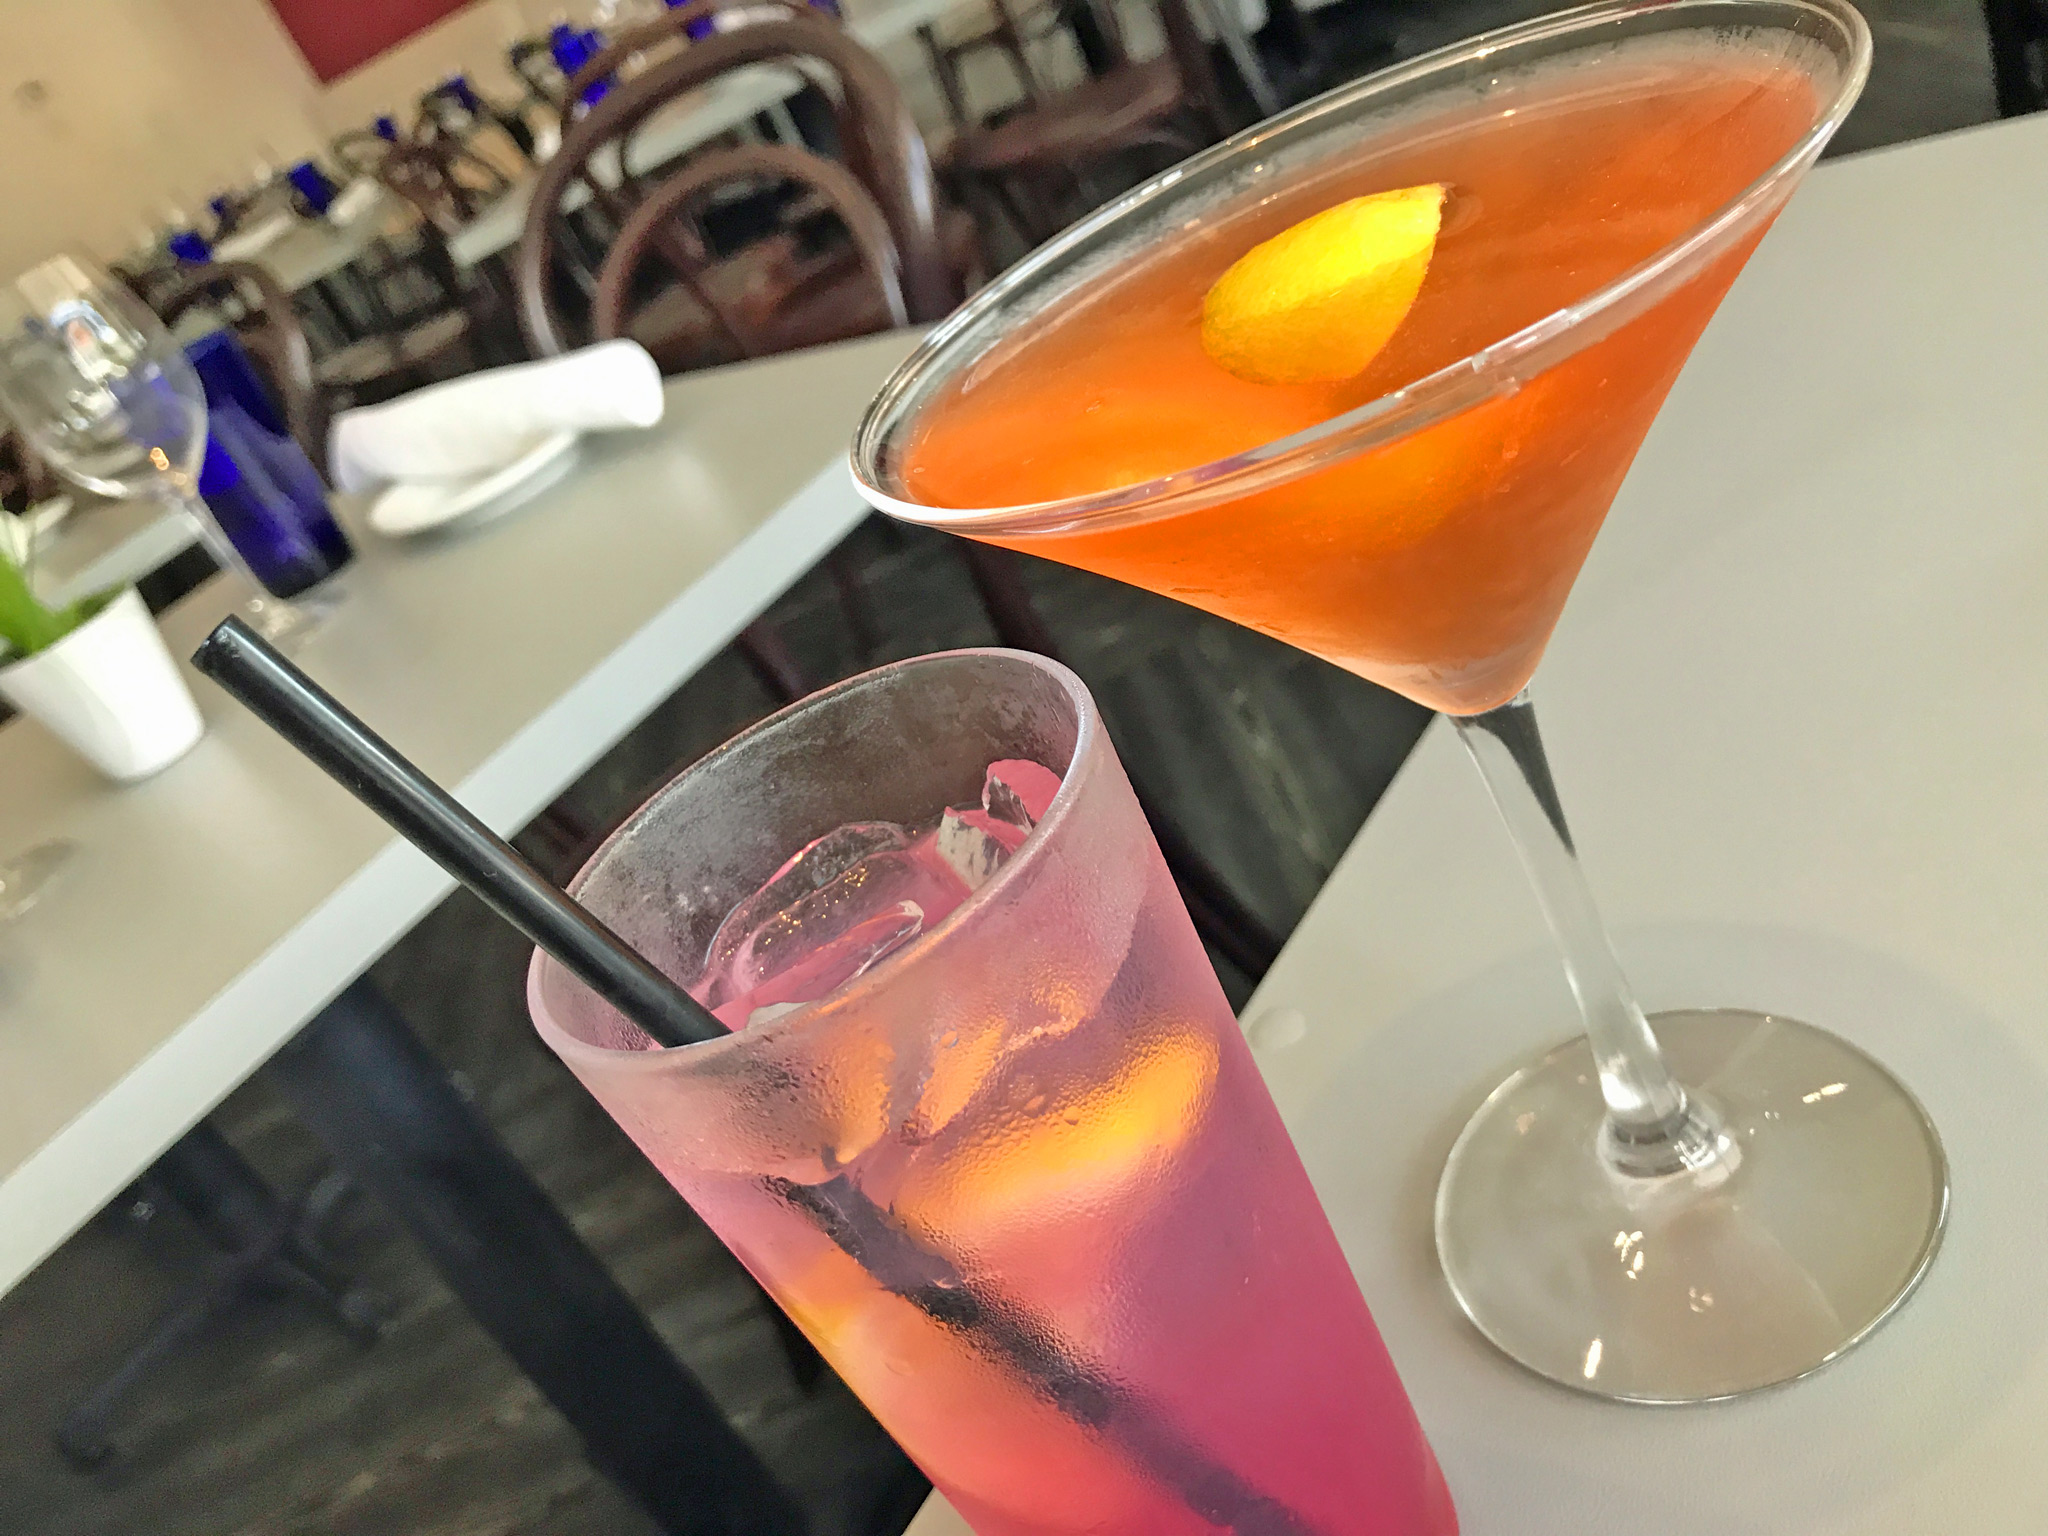 (L) Grace - 360, Lemonade, Lavender-Blueberry Syrup. (R) Watson - Boodles, Aperol, St. Germaine, White Peach Balsamic, Prosecco.